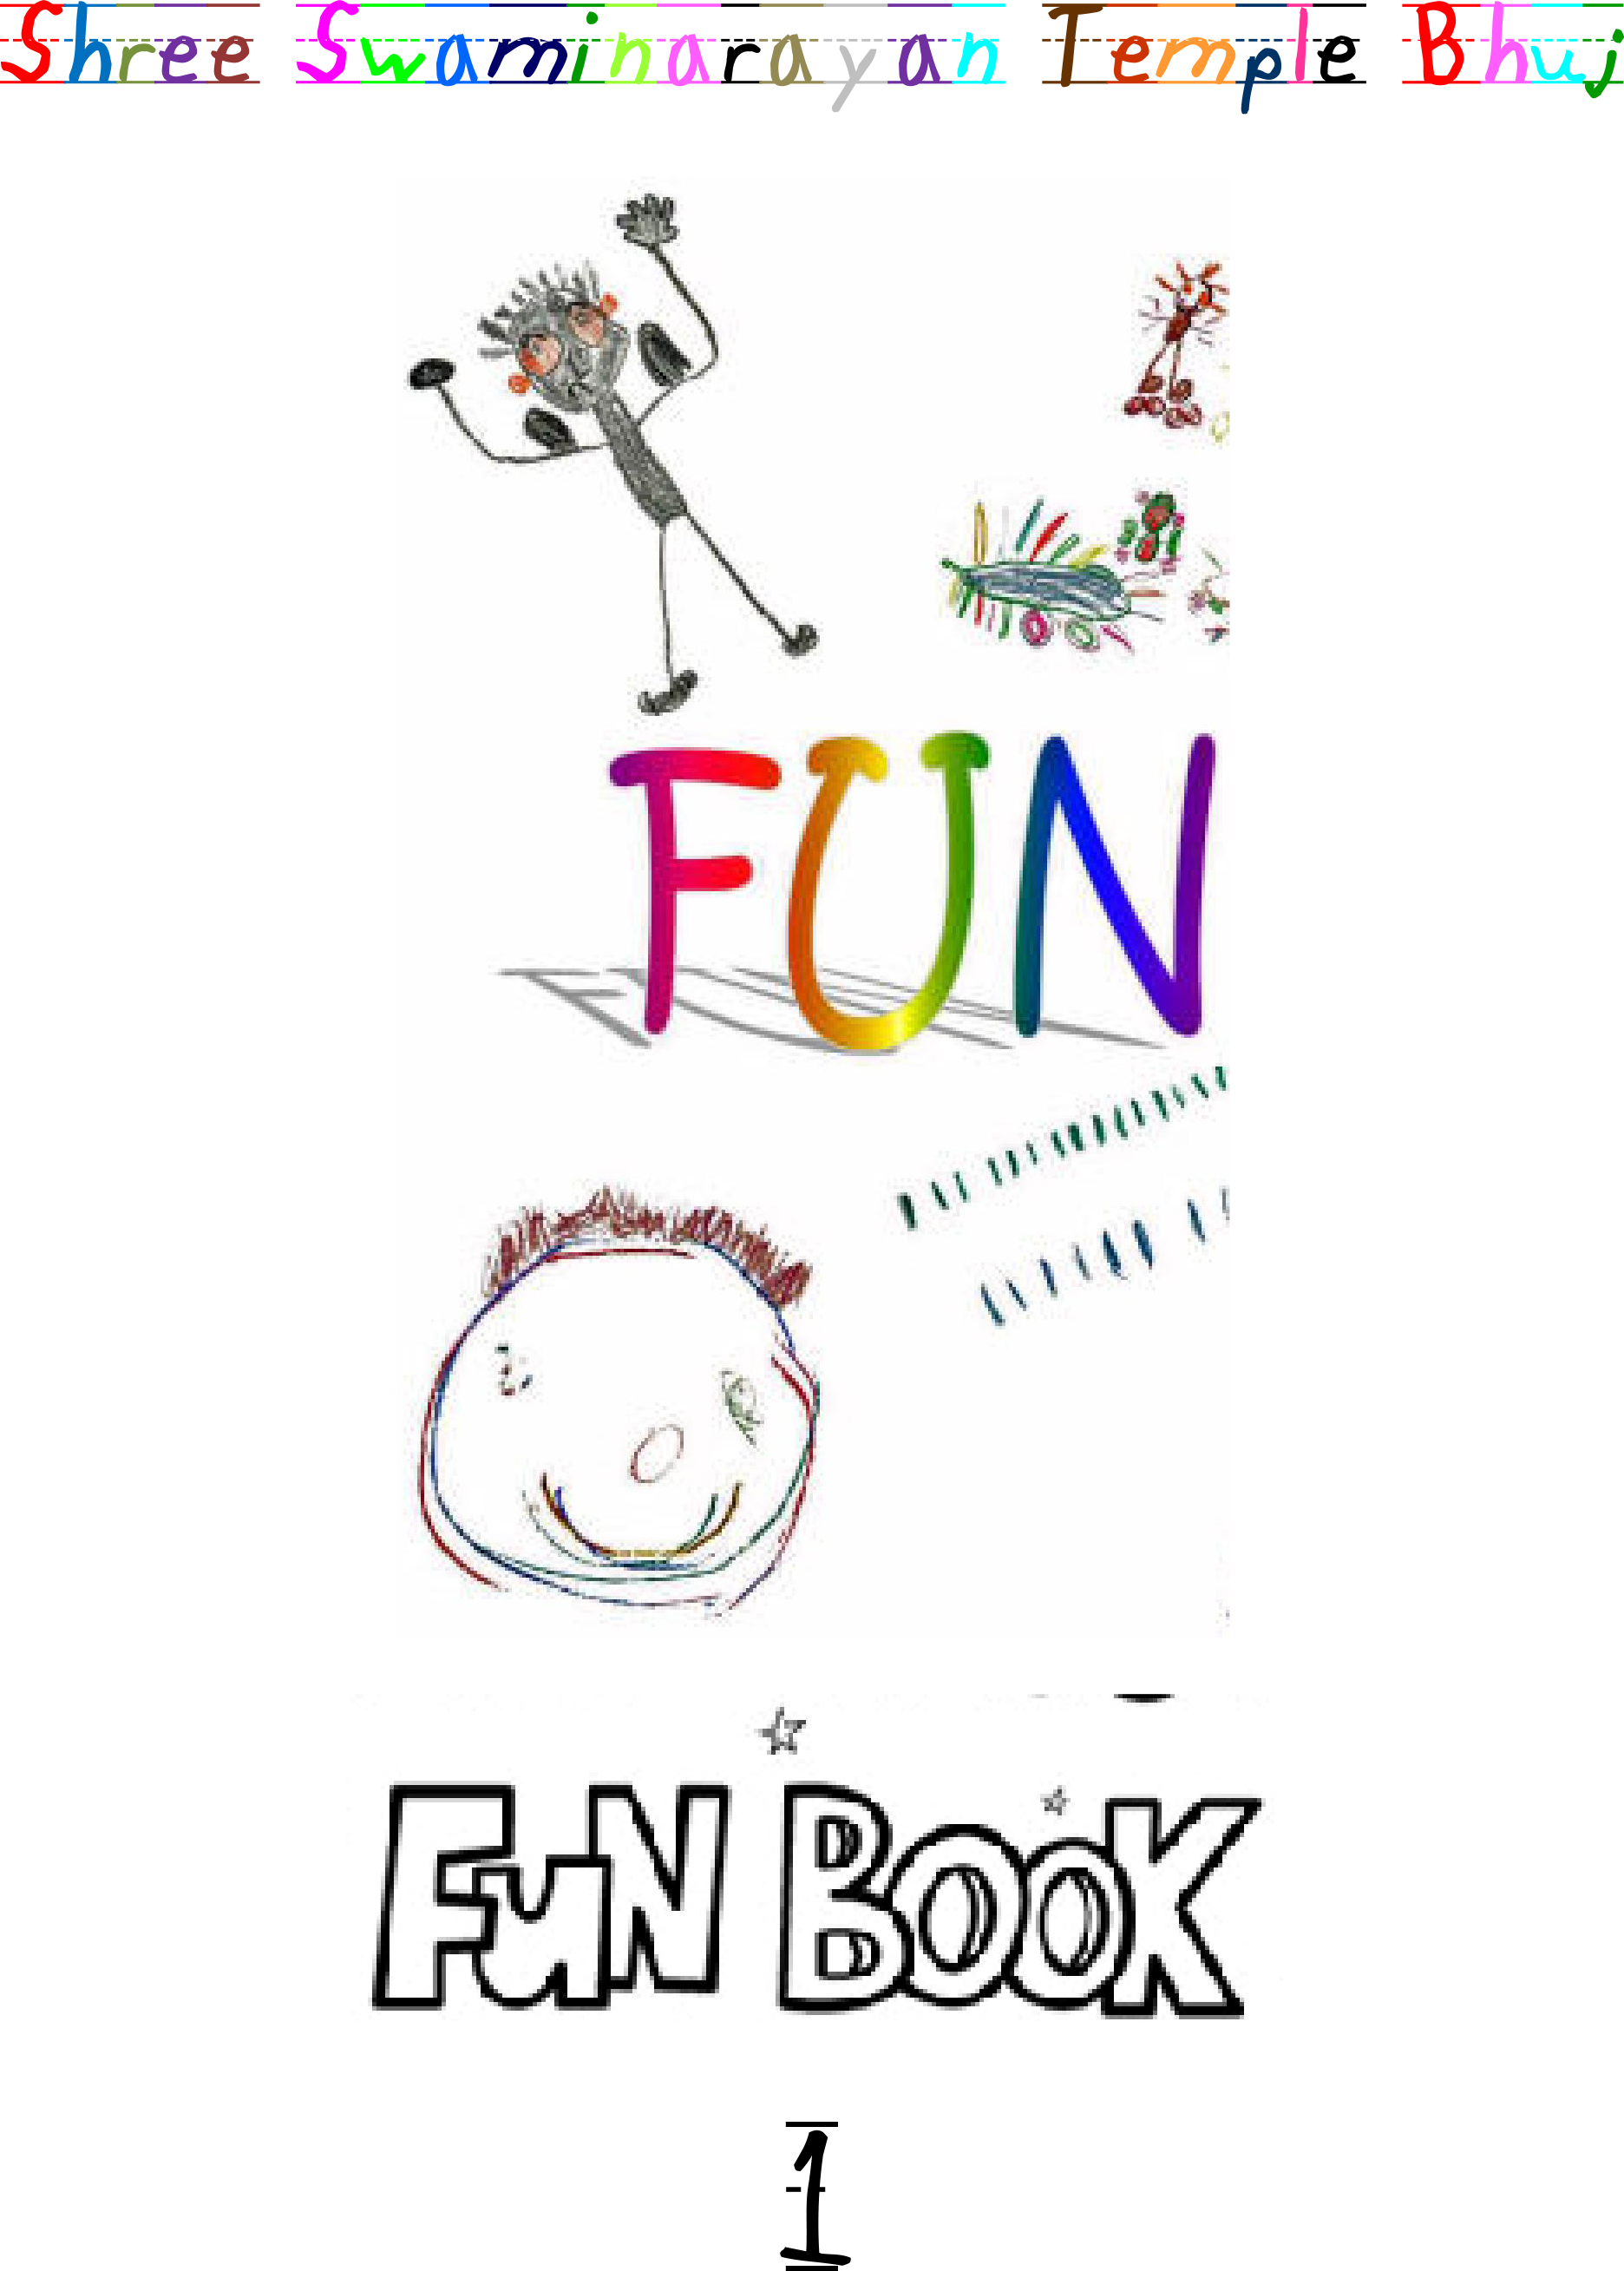 Cover of Funbook 02